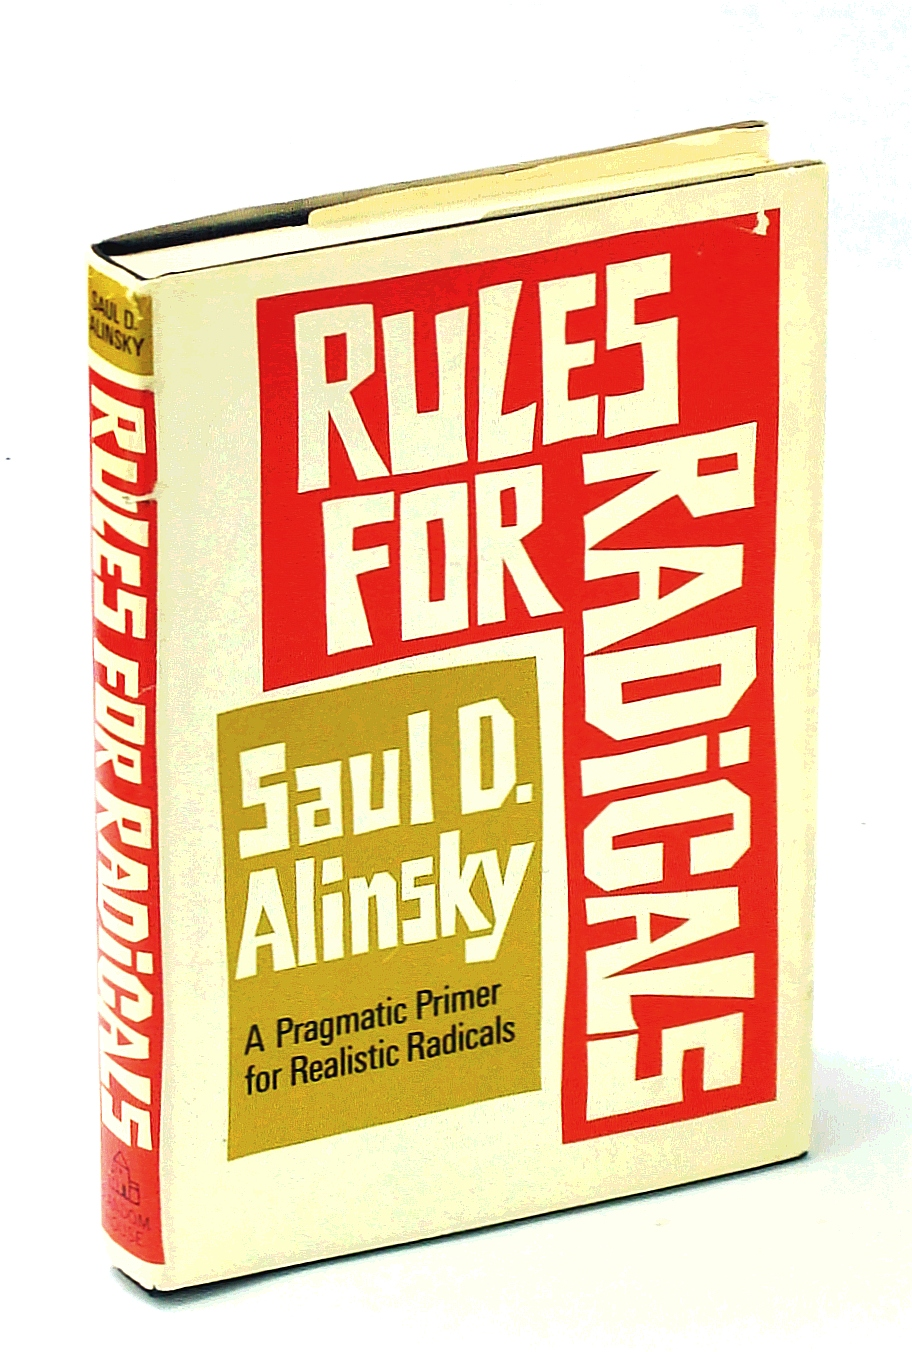 Image for Rules for Radicals: A Practical Primer for Realistic Radicals